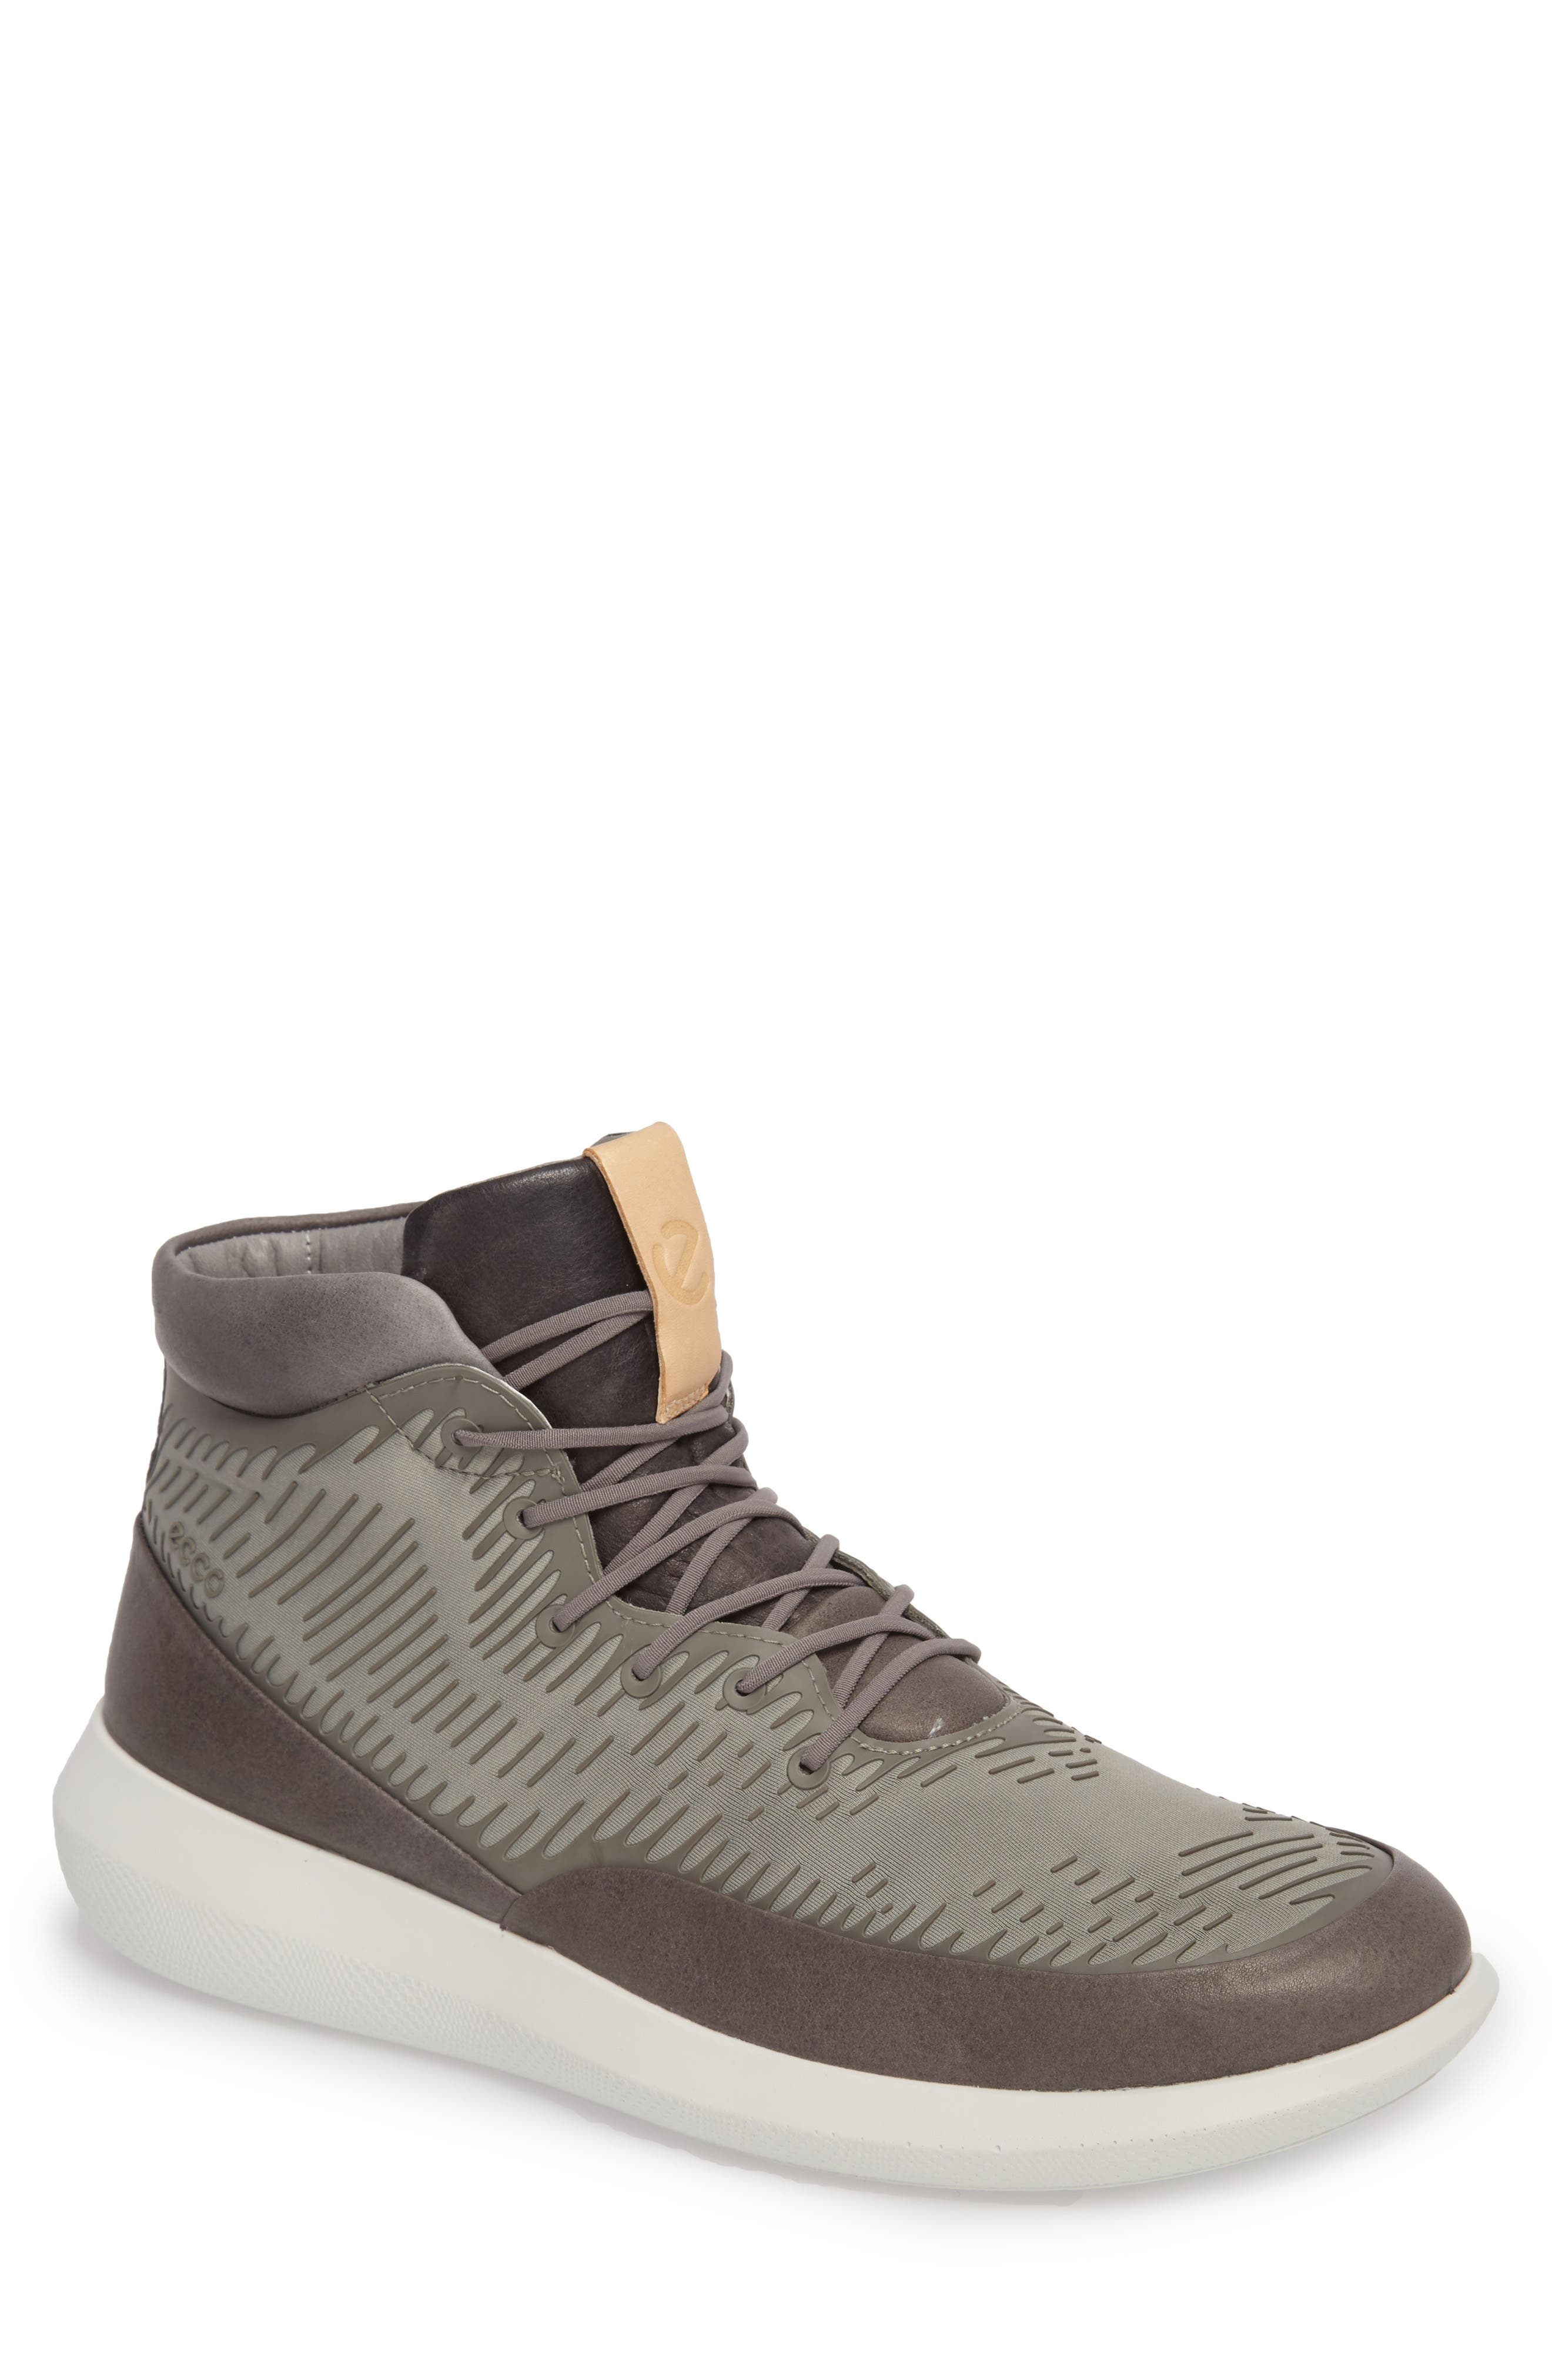 Scinapse High Top Sneaker,                         Main,                         color, WILD DOVE LEATHER